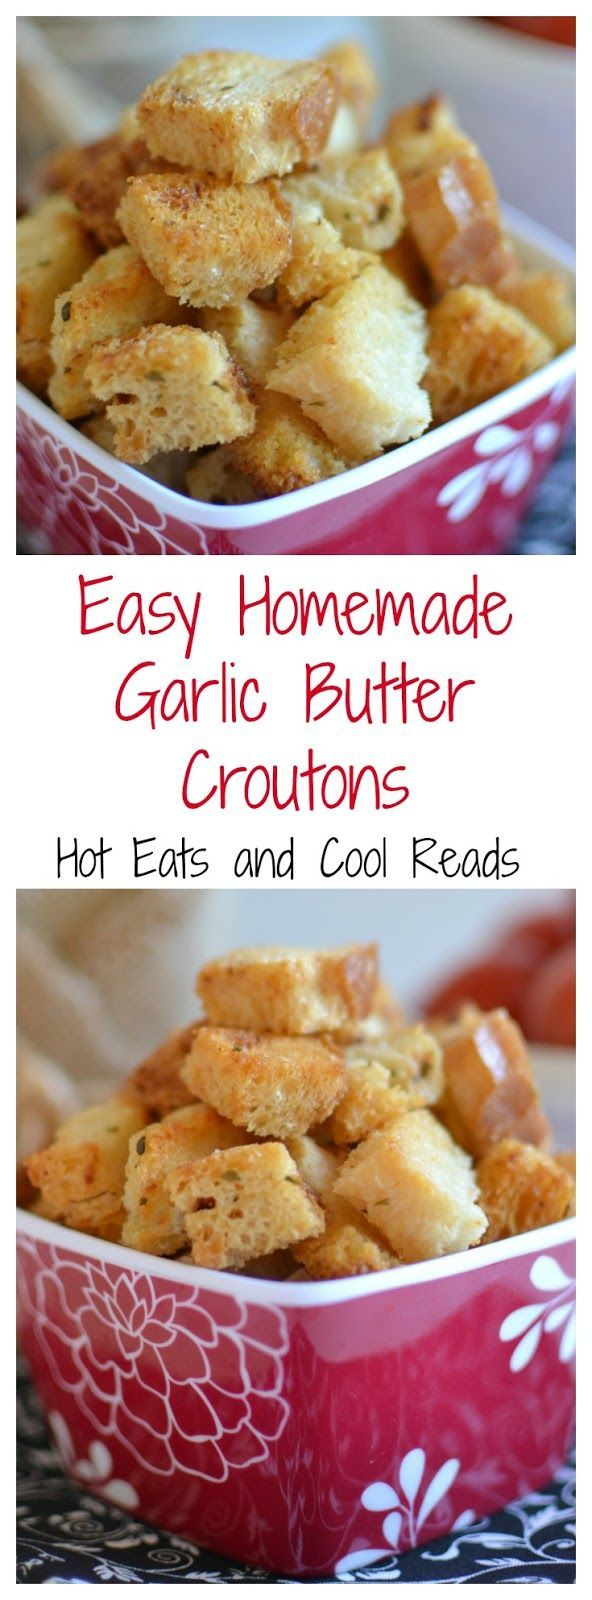 A delicious and inexpensive way to make your own croutons! Use day old bread, buns or any other bread you have on hand! Great on salad, soup or even as a snack! Easy Homemade Garlic Butter Croutons Recipe from Hot Eats and Cool Reads!